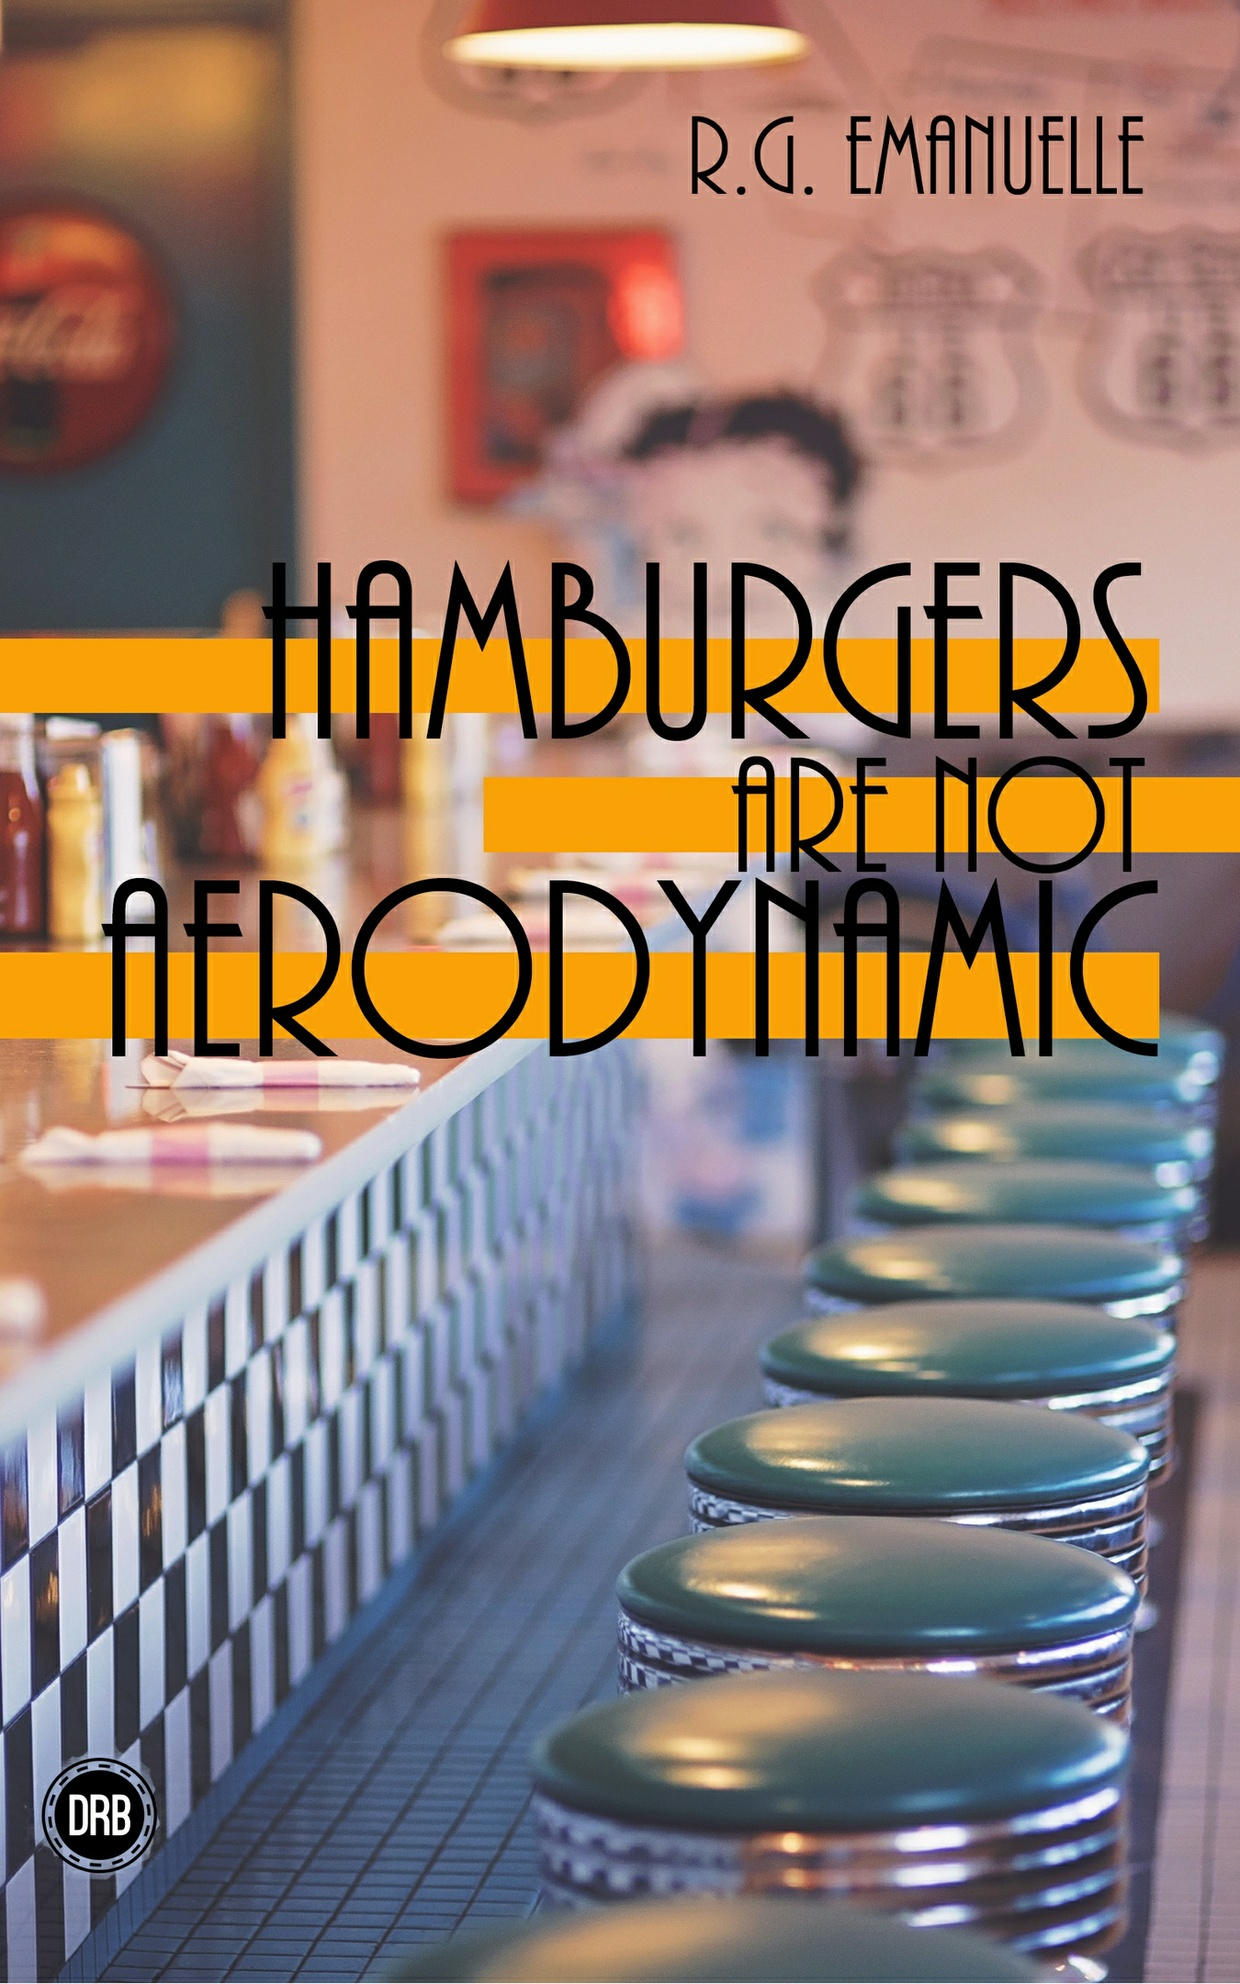 Hamburgers are not Aerodynamic by R.G. Emanuelle - epub (Nook)